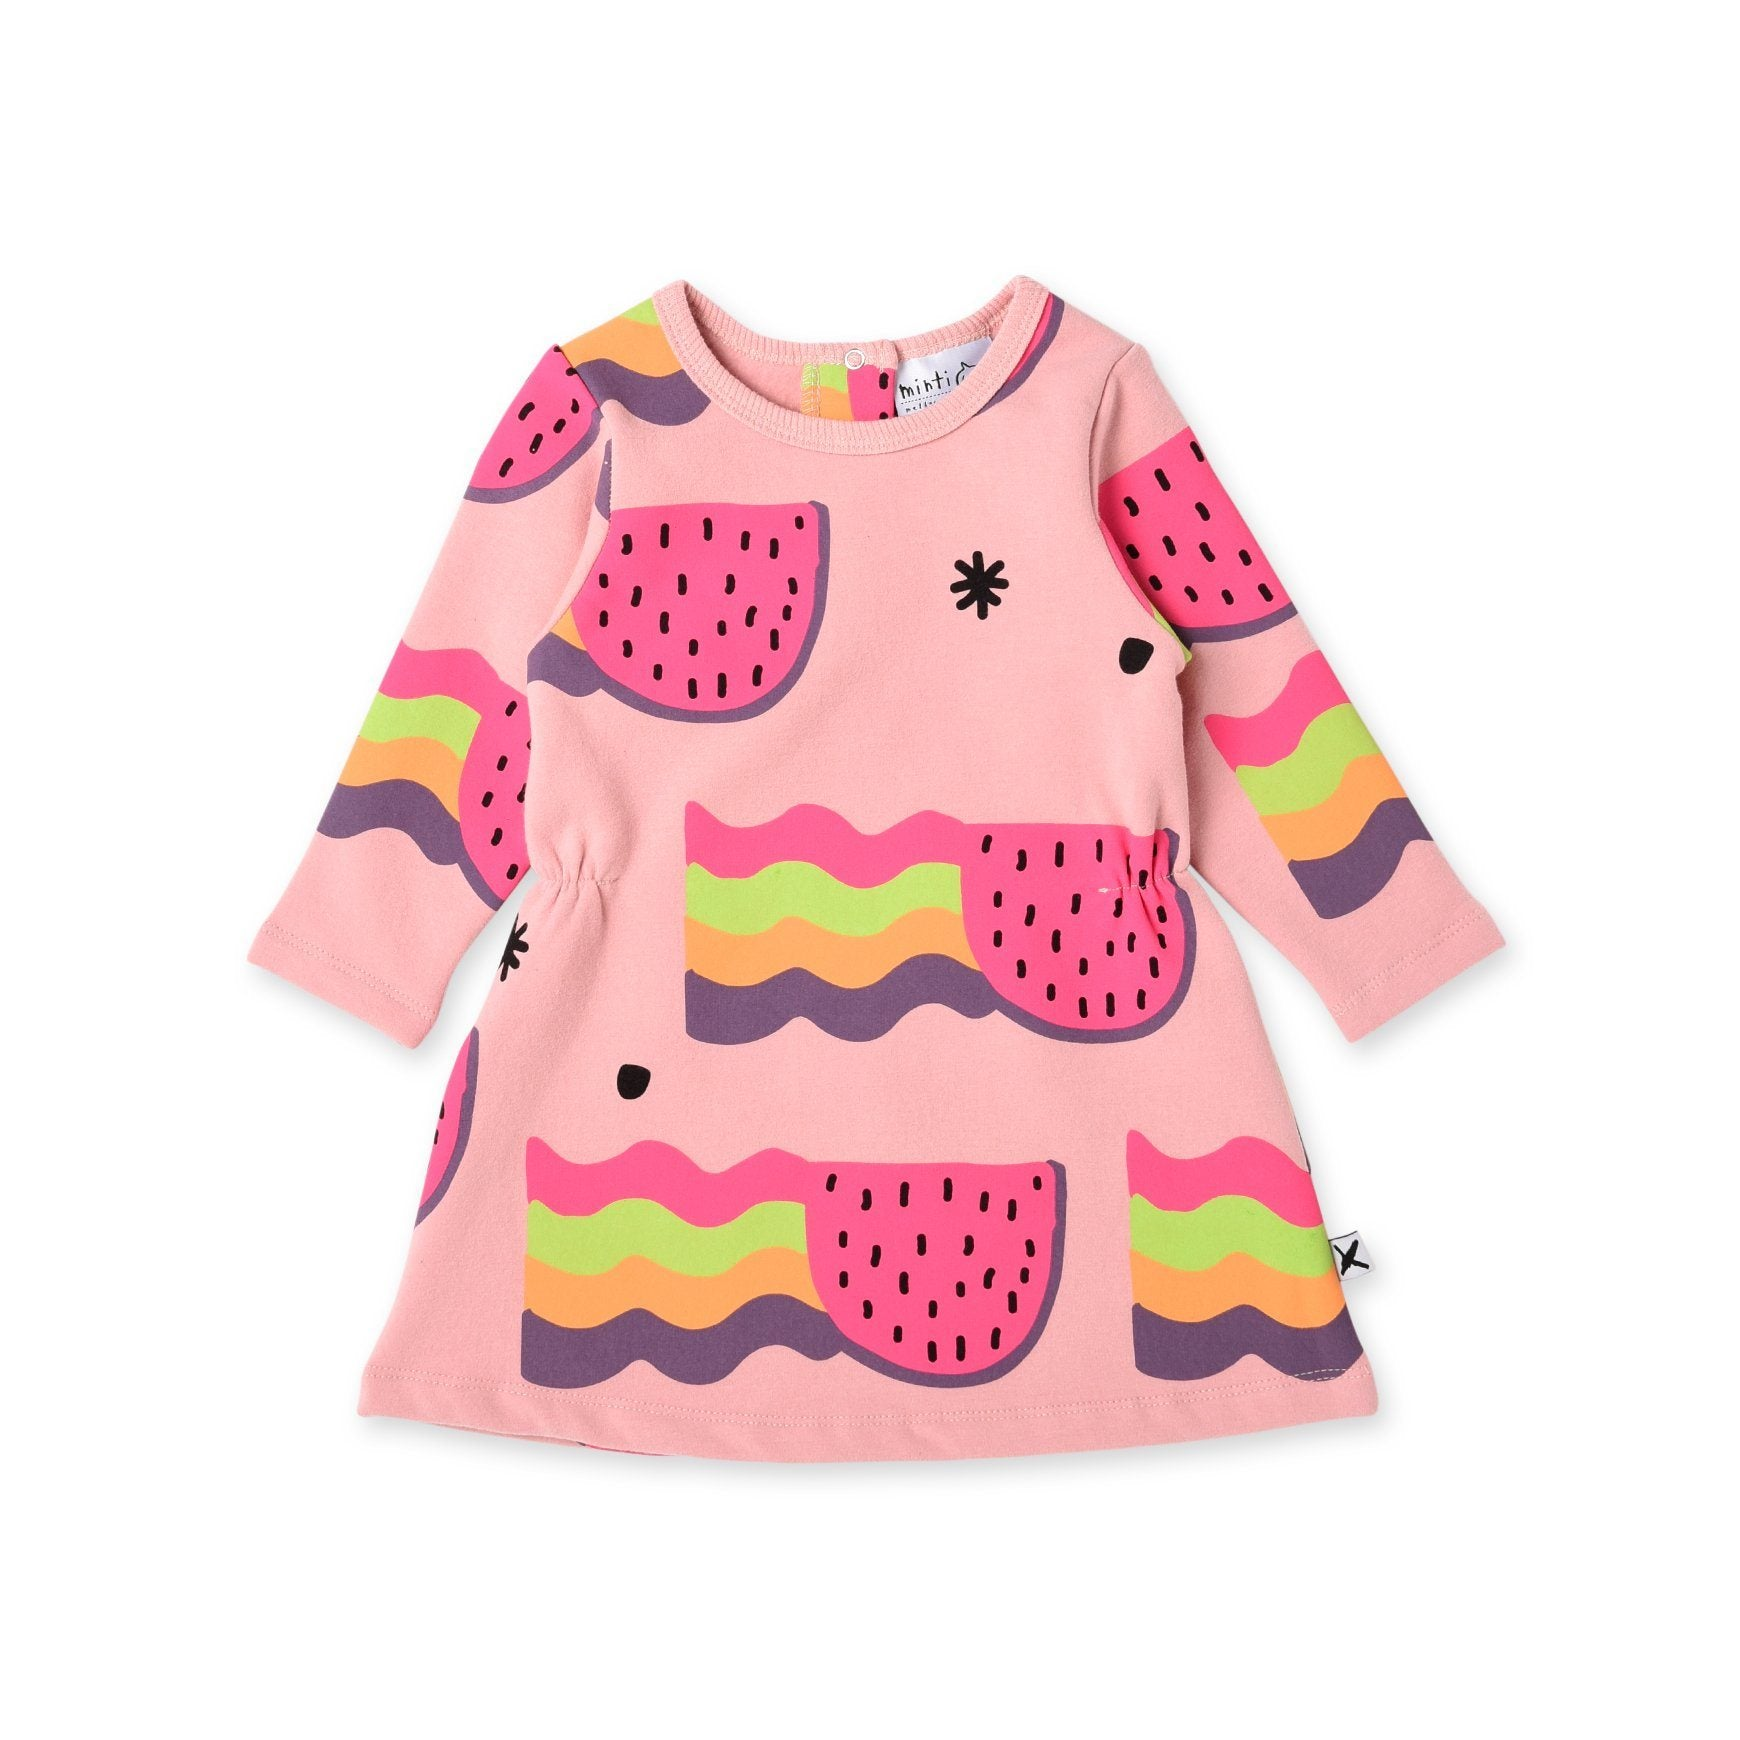 Watermelon Rainbows Furry Baby Dress